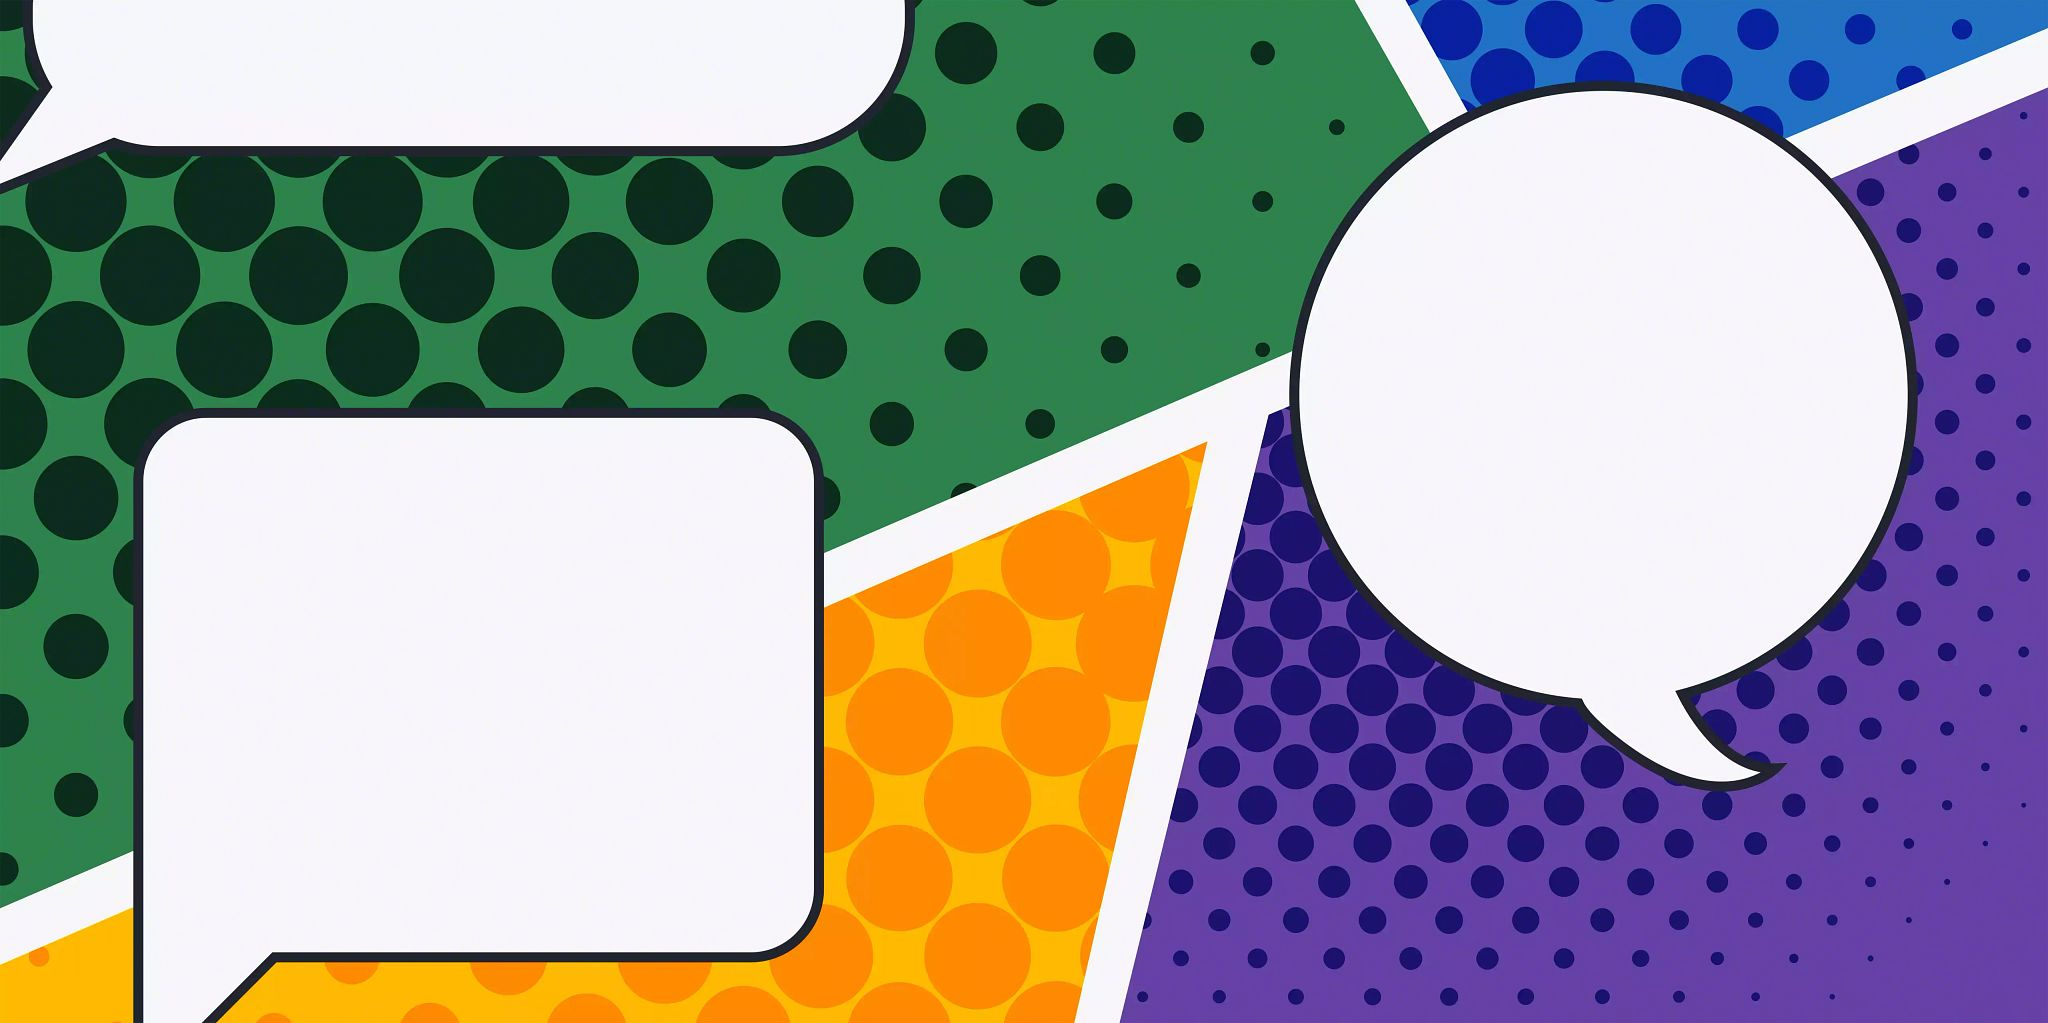 Article header image: Three differently shaped quote bubbles on a colorful background.